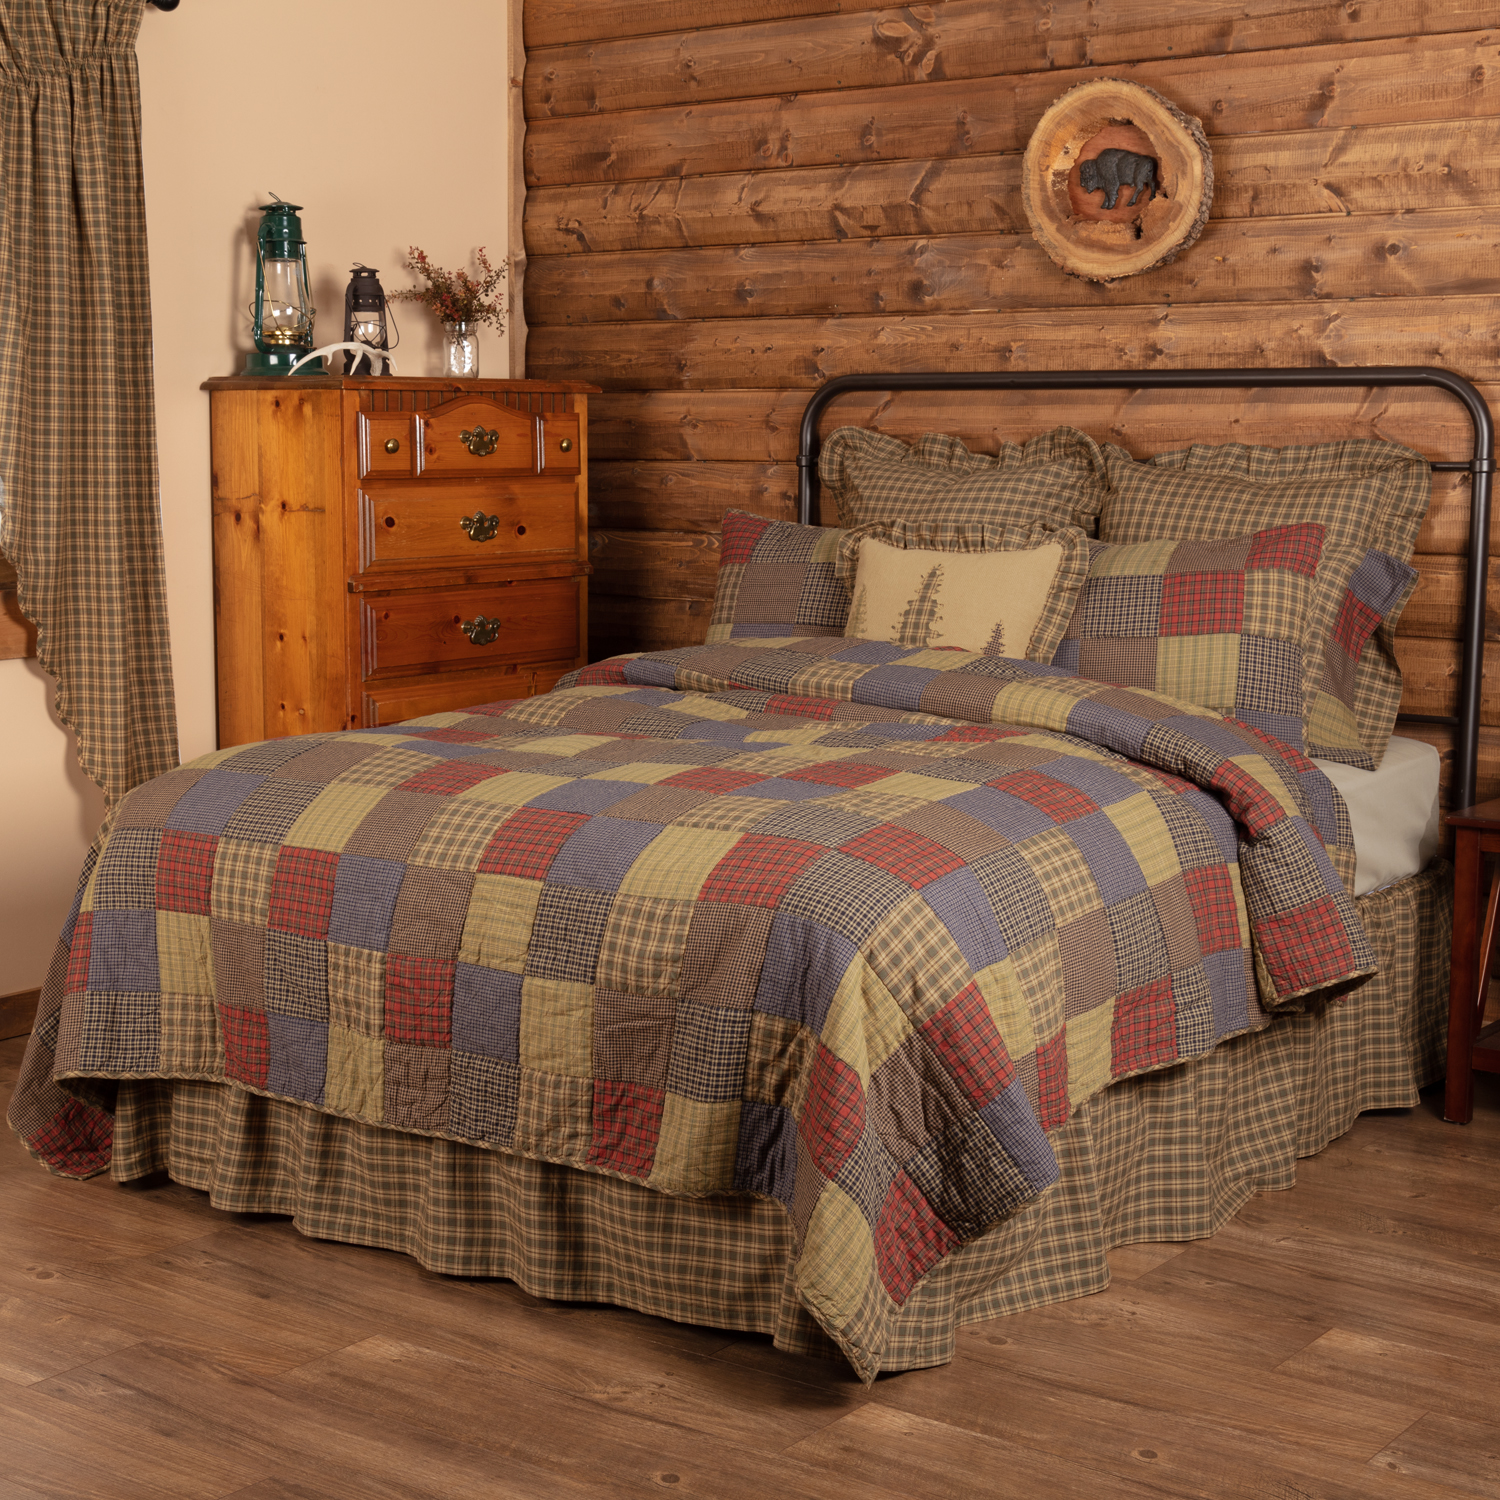 Cedar Ridge Luxury King Quilt 120Wx105L